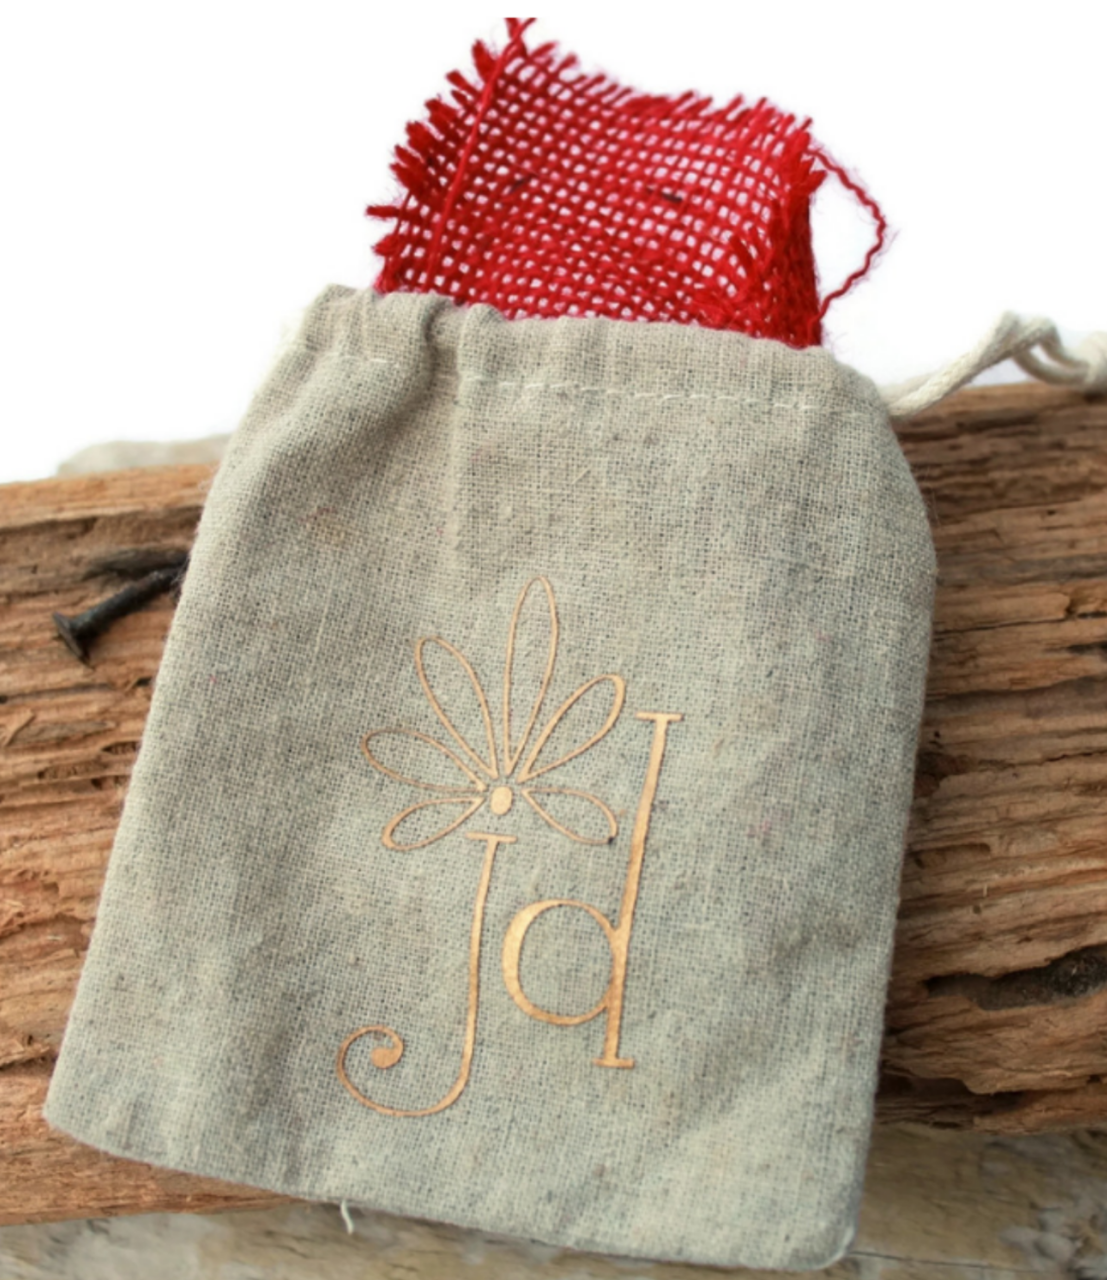 tan-jd-linen-jewelry-bag-red-burlap-liner-on-wood-background